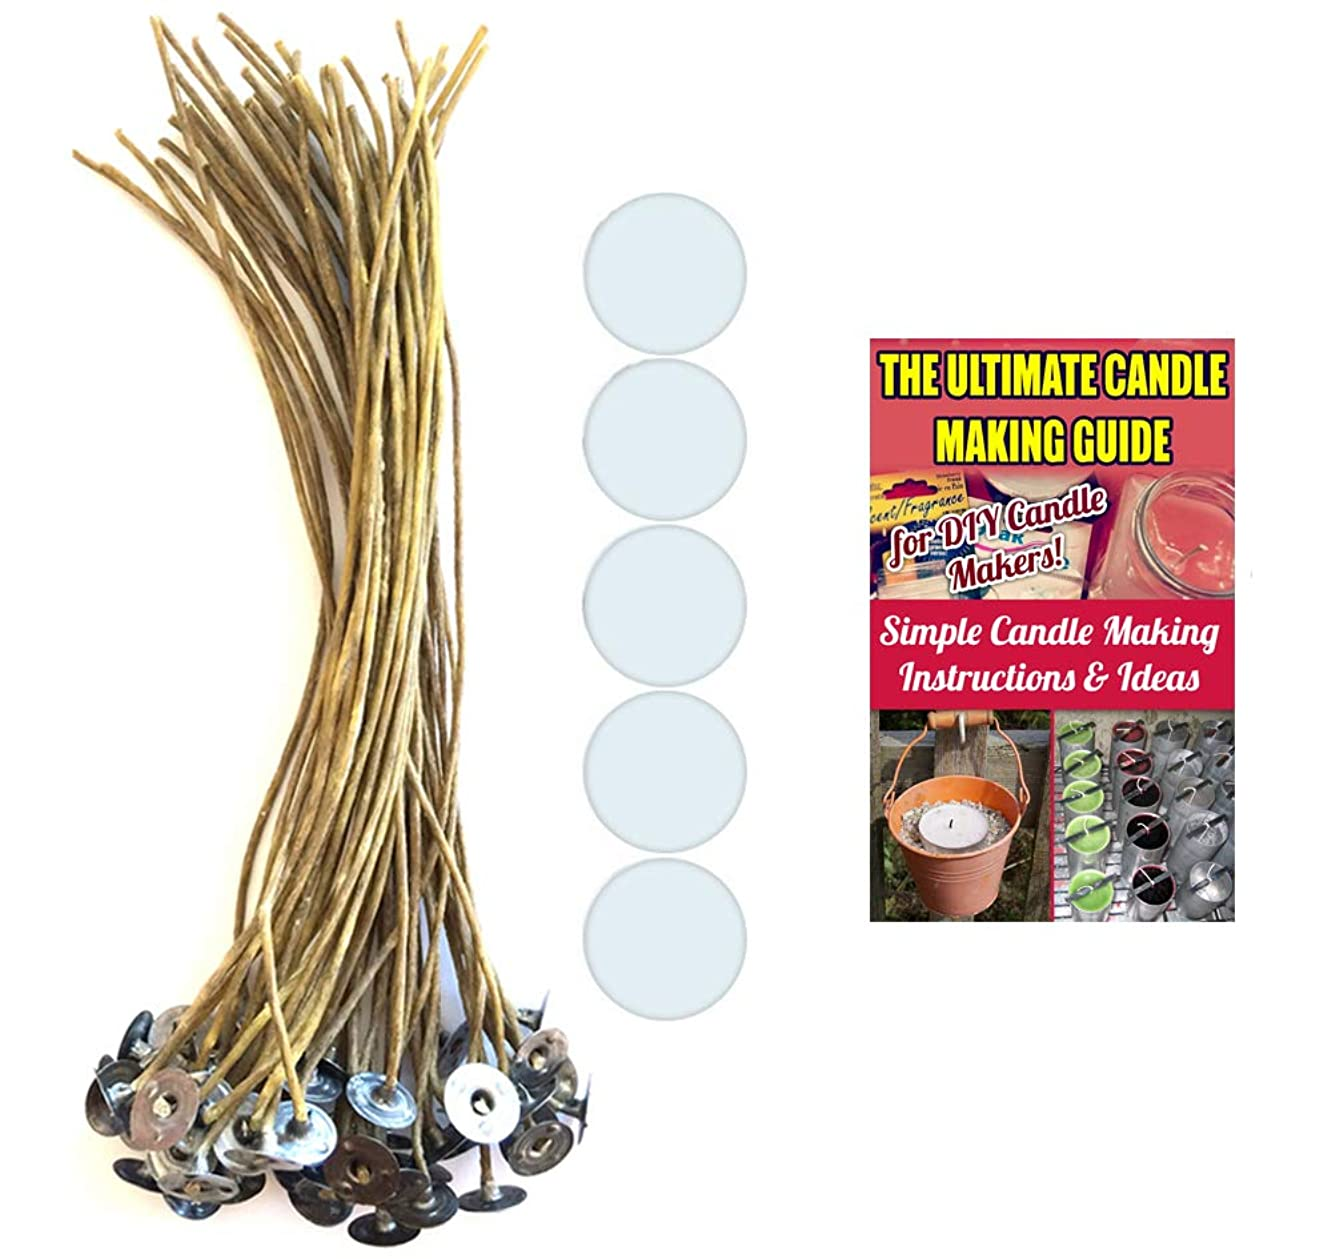 CozYours 8 inch Beeswax Hemp Candle Wicks with Candle Wick Stickers, 50/50 pcs; Low Smoke&Natural; Candle DIY Hacks E-Book Included. Candle Wicks for Candle Making